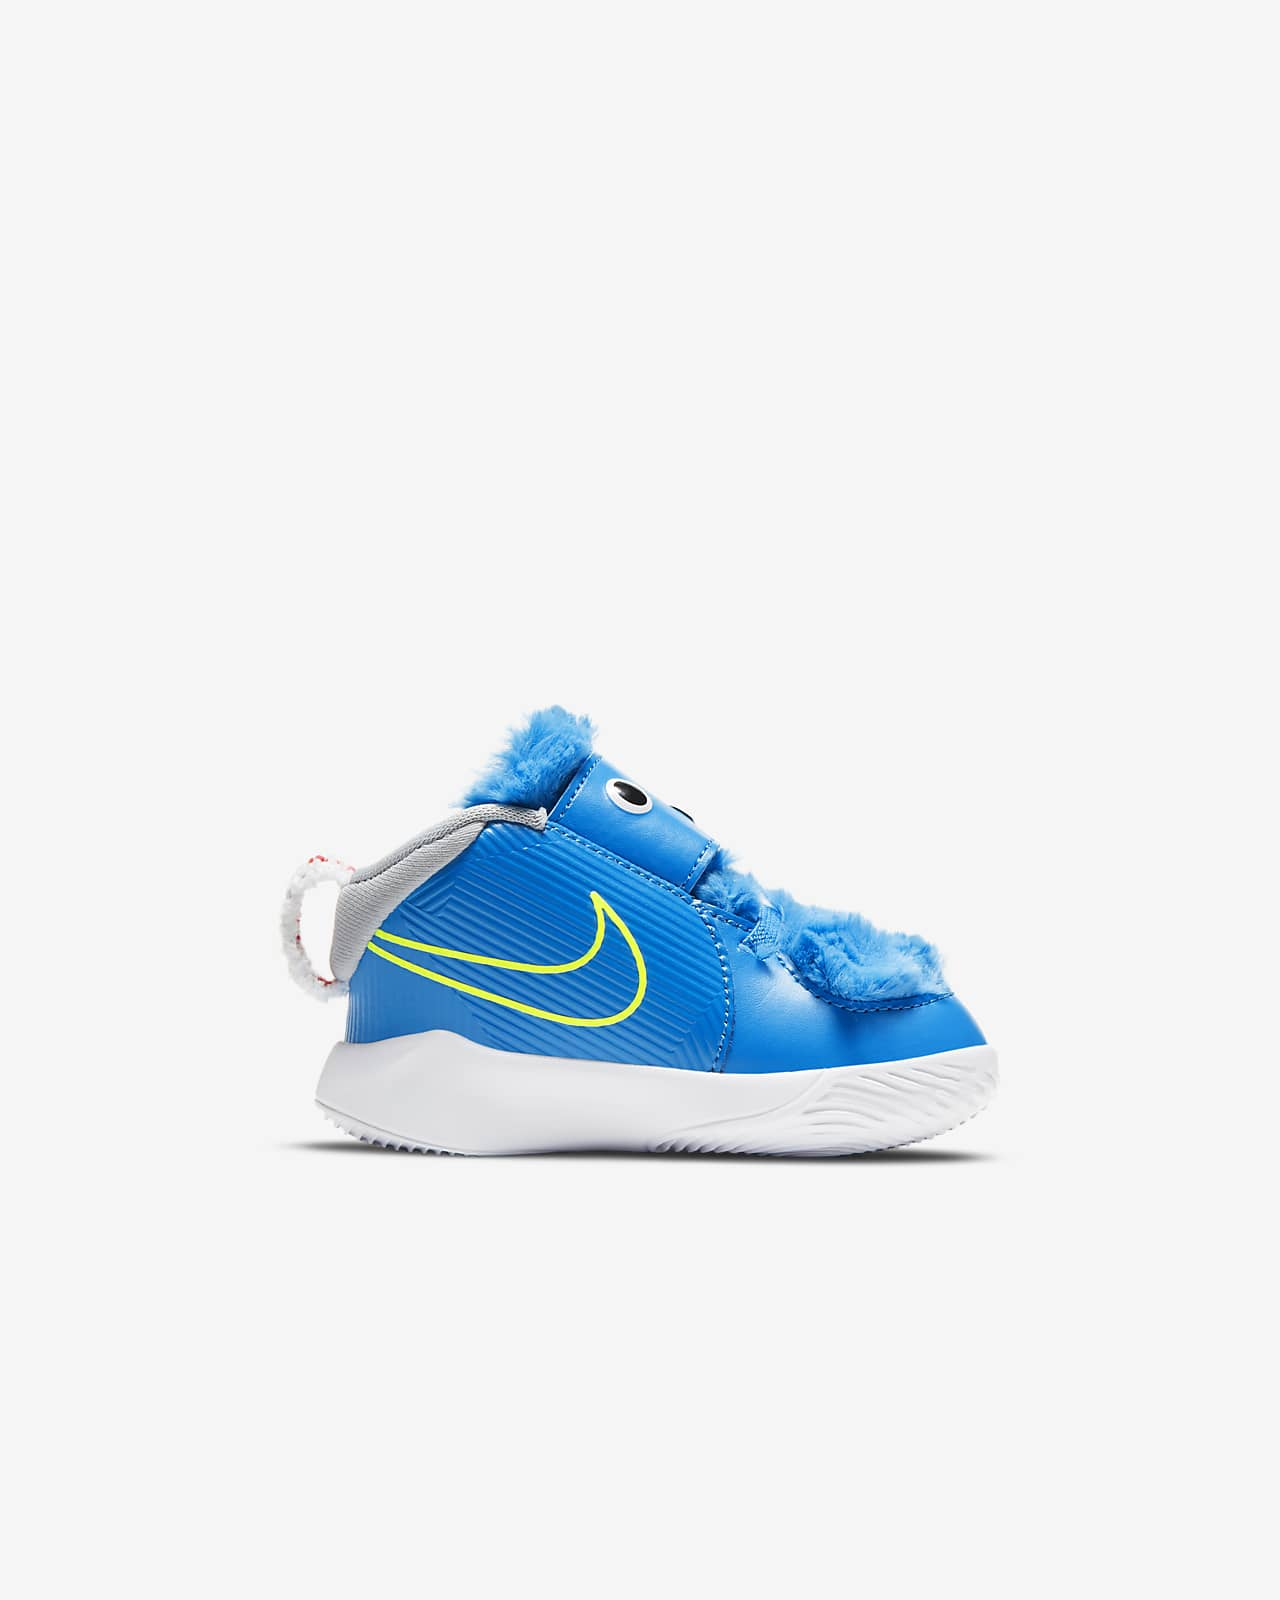 Nike Team Hustle D 9 Lil Baby and